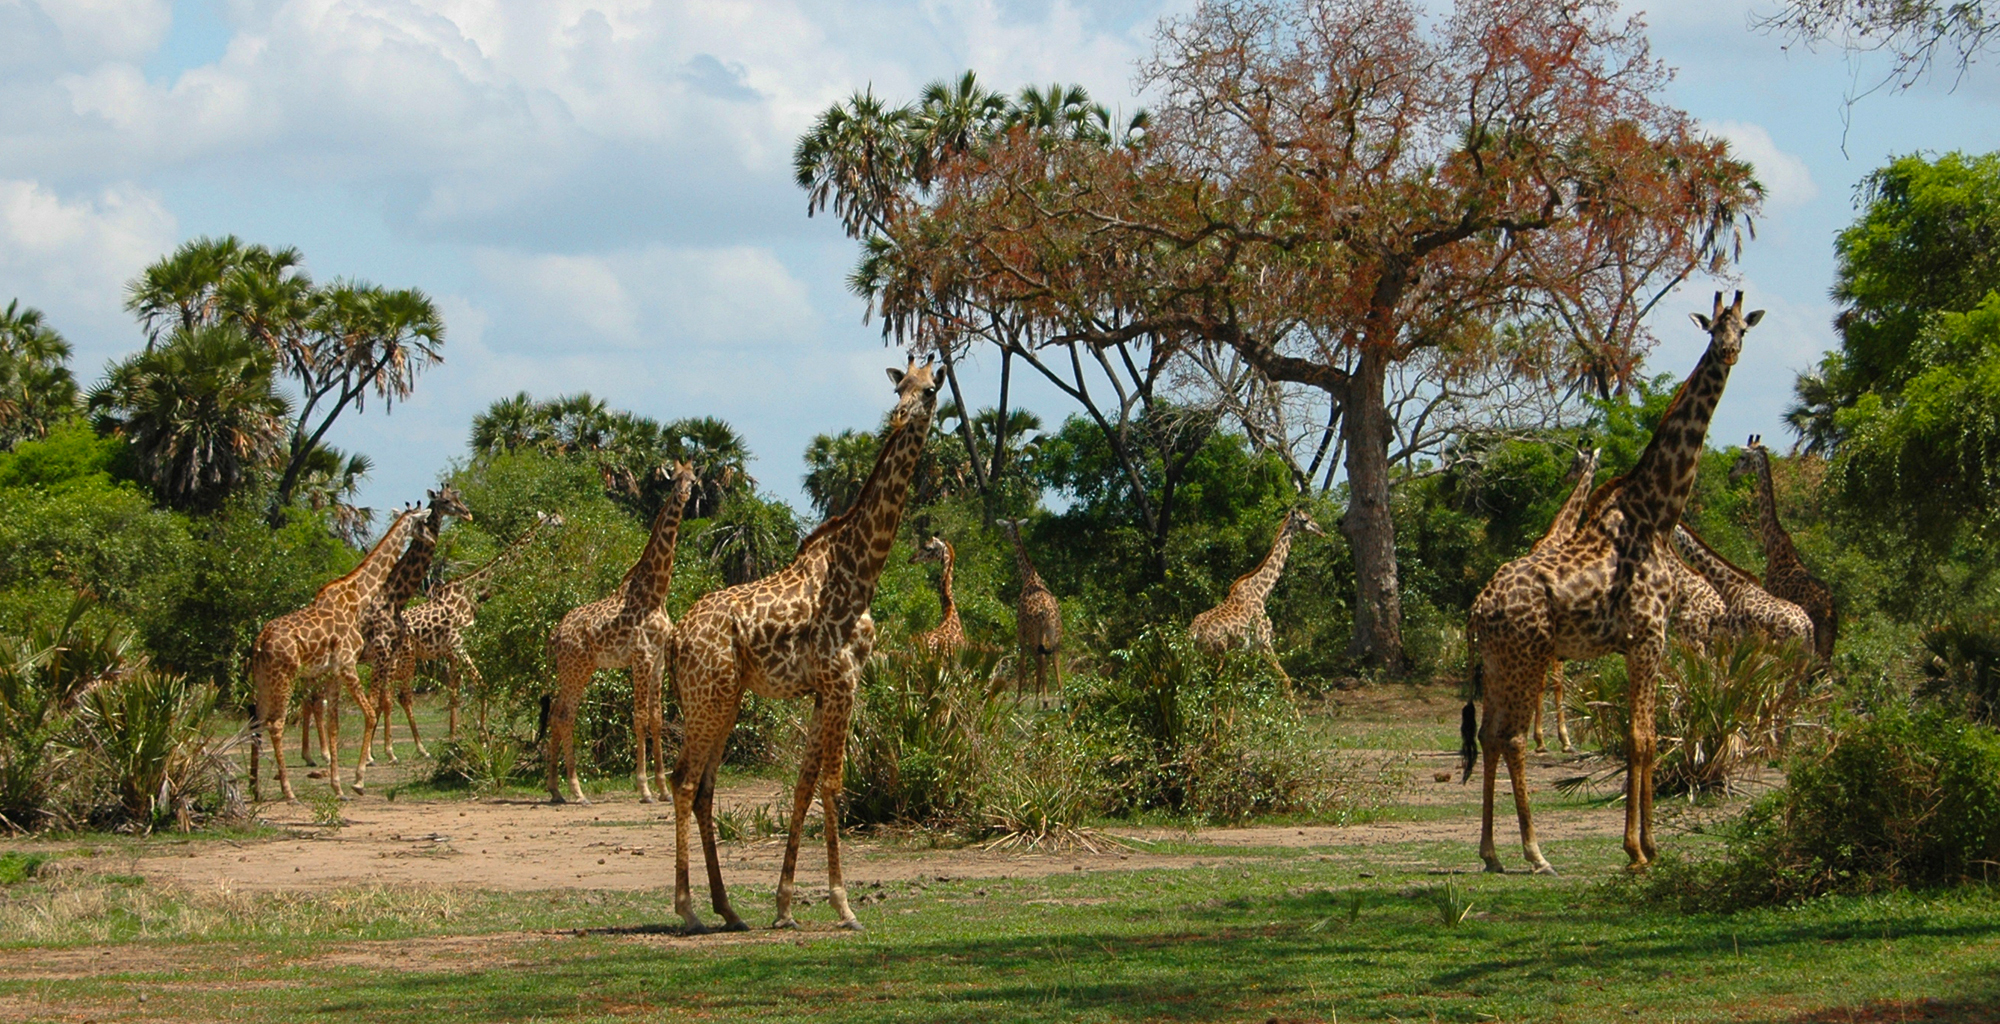 Tanzania-Selous-Game-Reserve-Wildlife-Giraffe